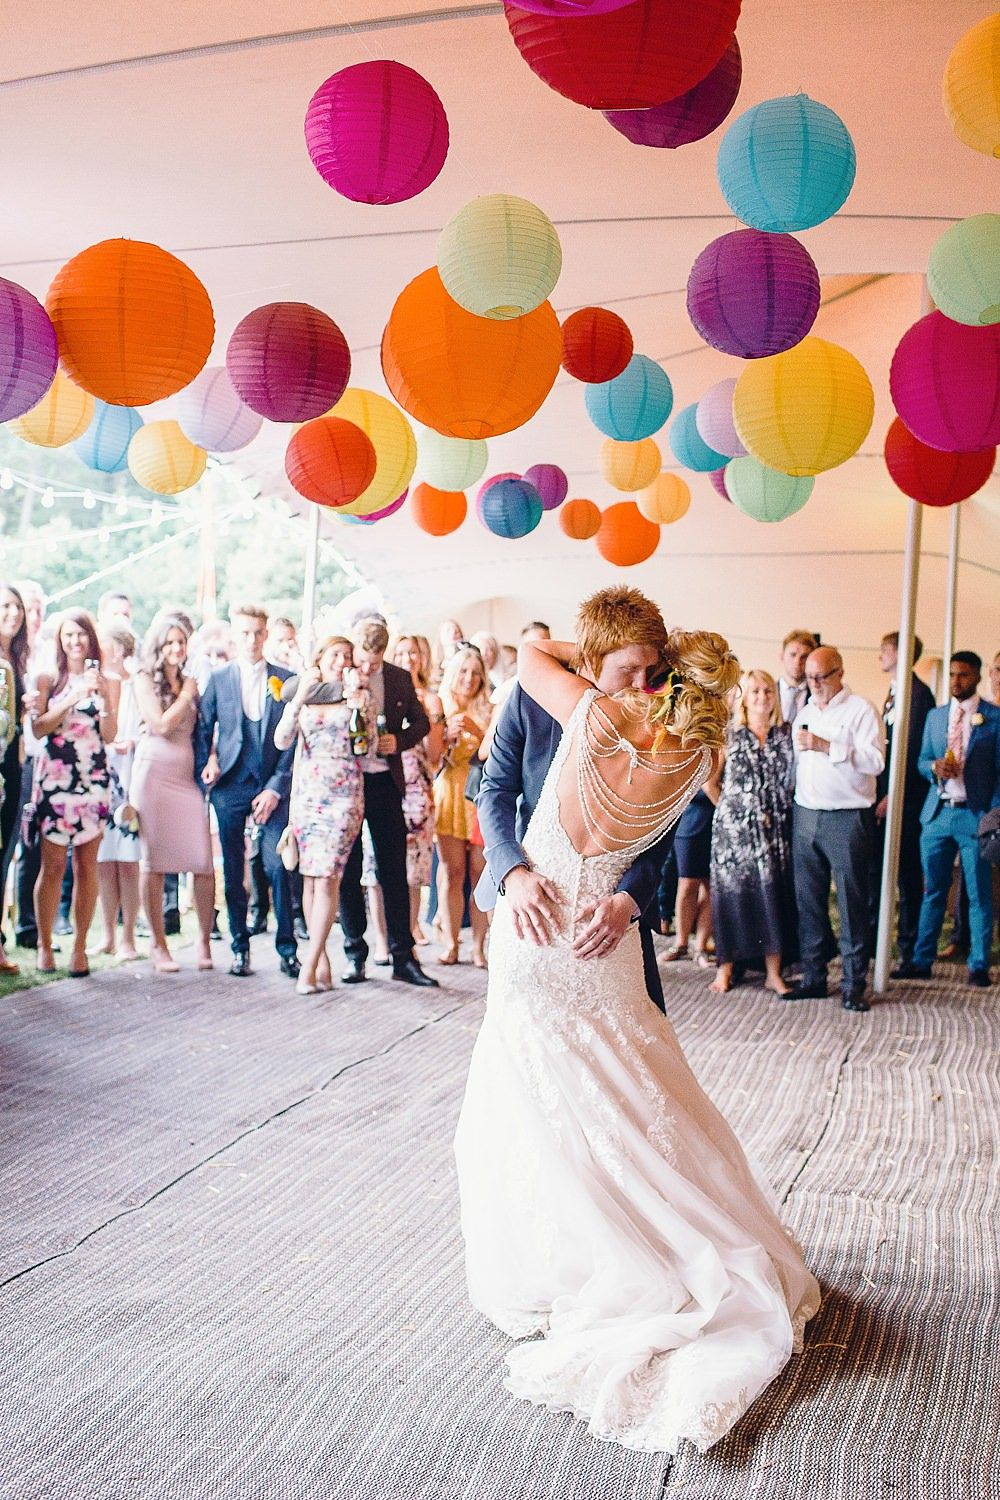 15 Gorgeous Ways to Decorate Your Wedding Tent | Hanging paper ...